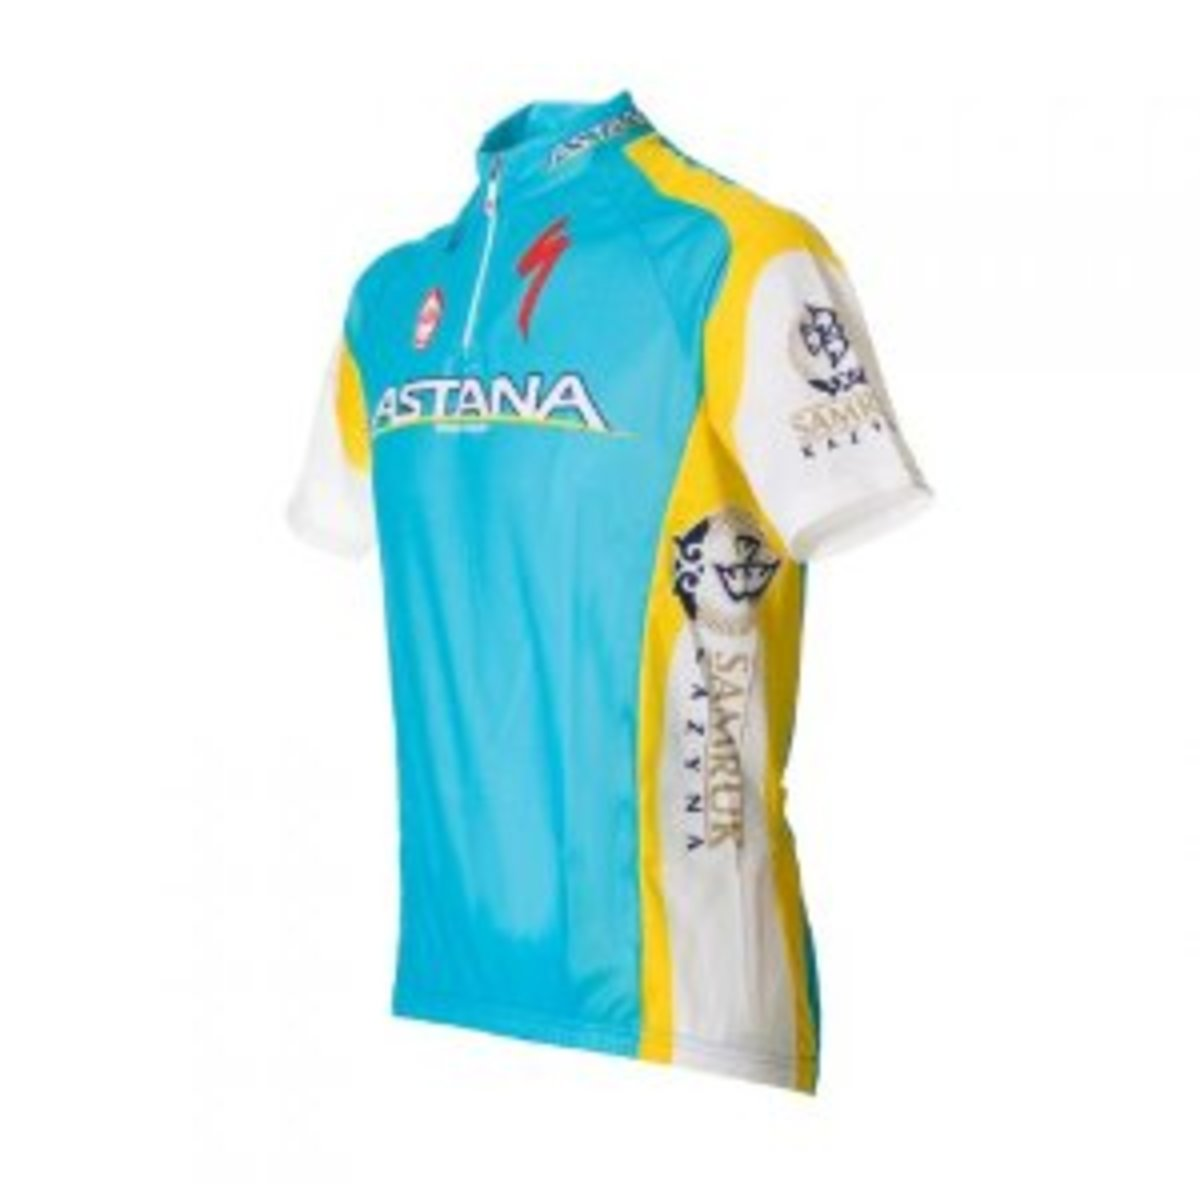 The baby blue colourscheme that cyclists either love or hate- Team Astana